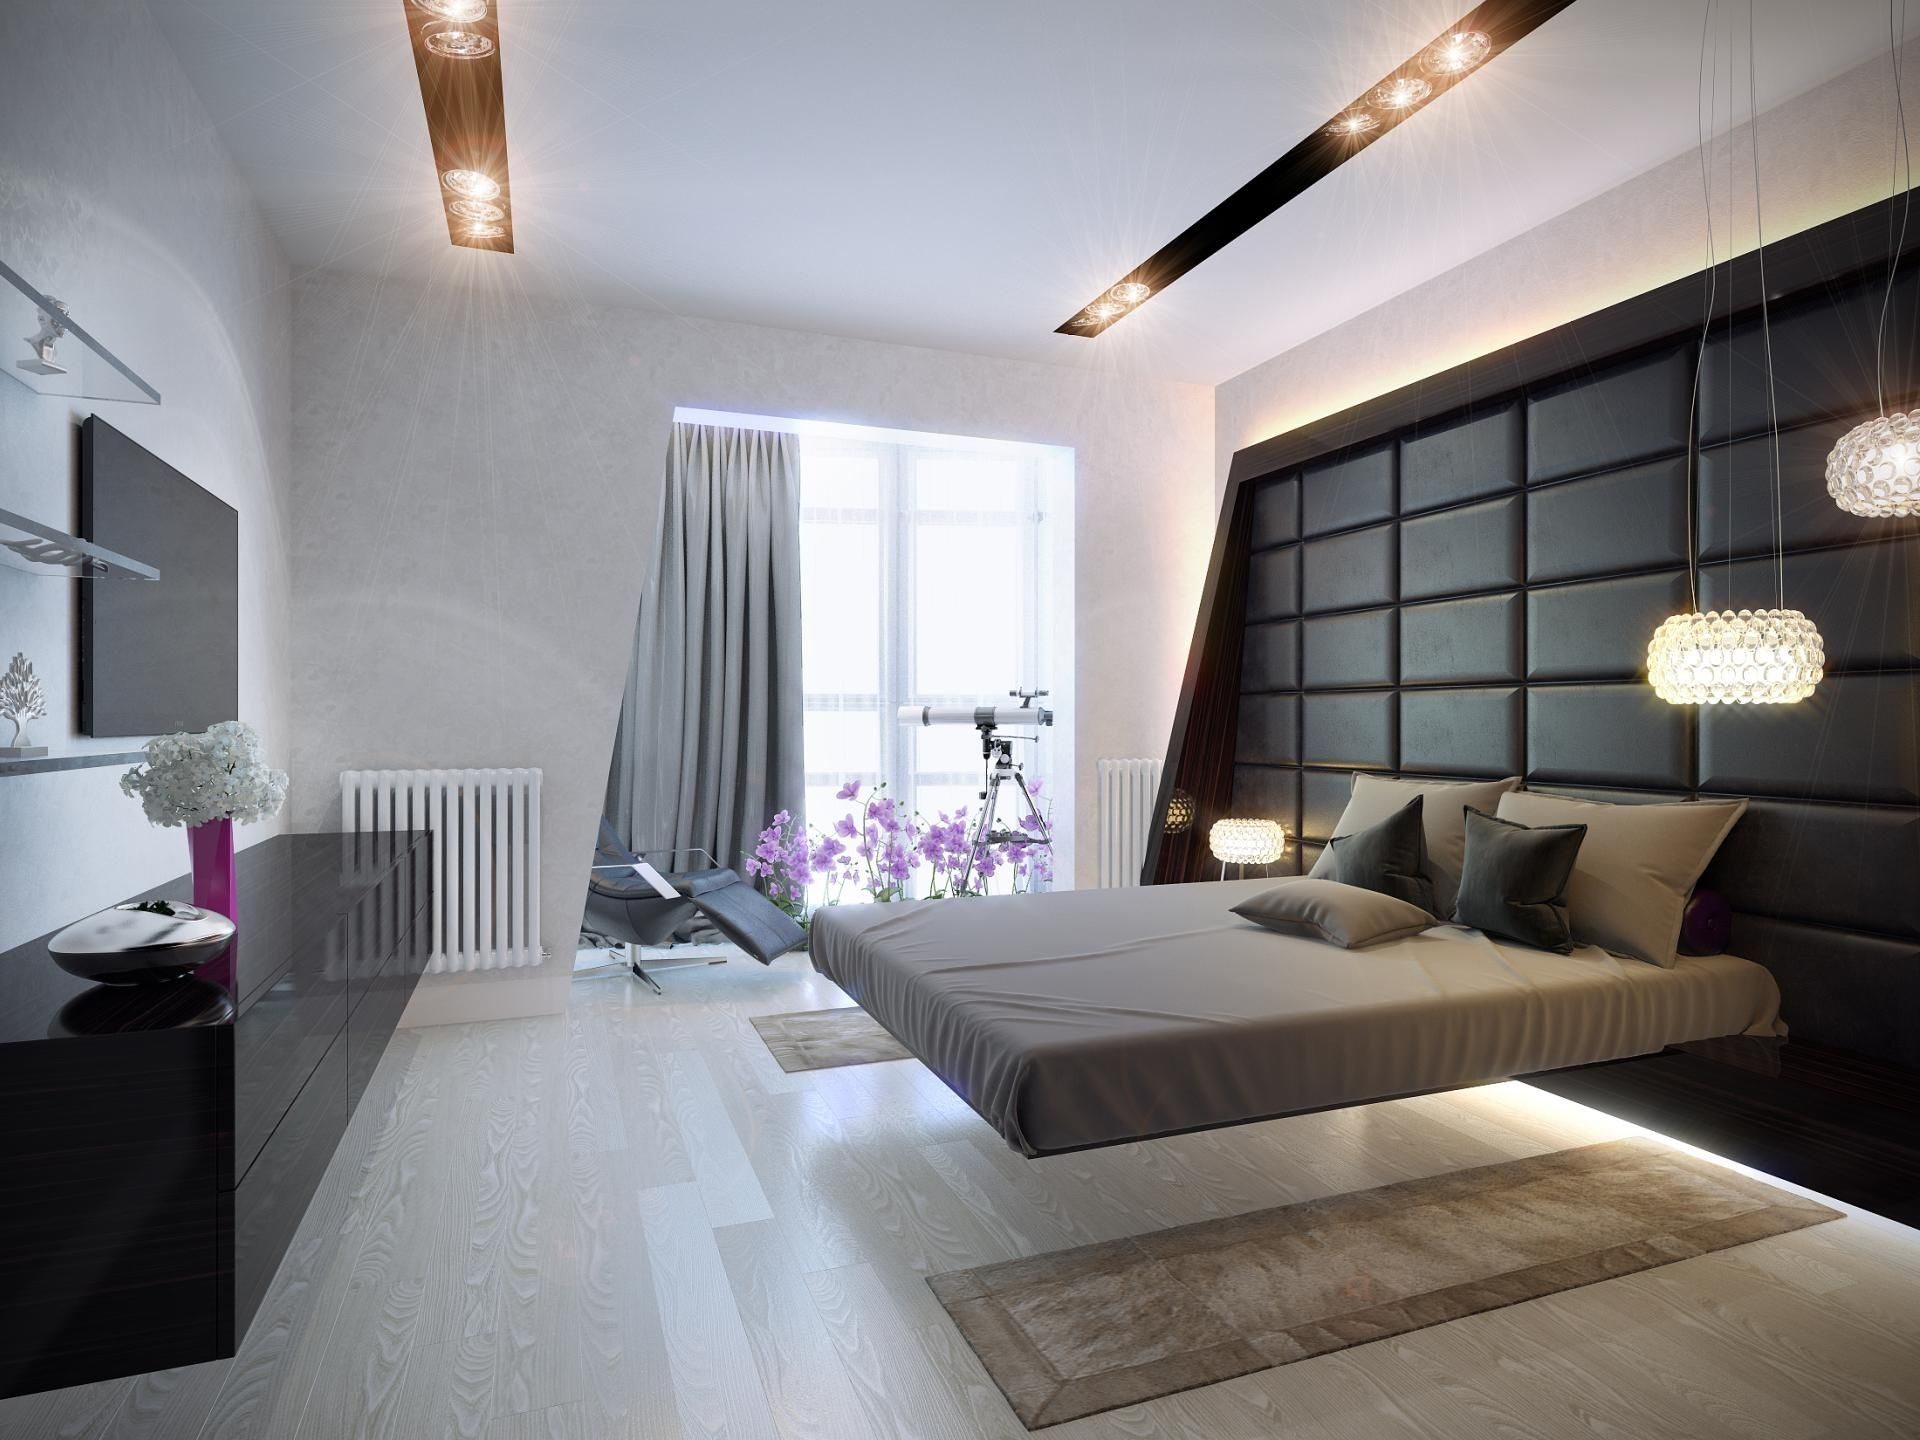 hovering bed and chocolate bar imitating headboard wall paneling for amazing bedroom